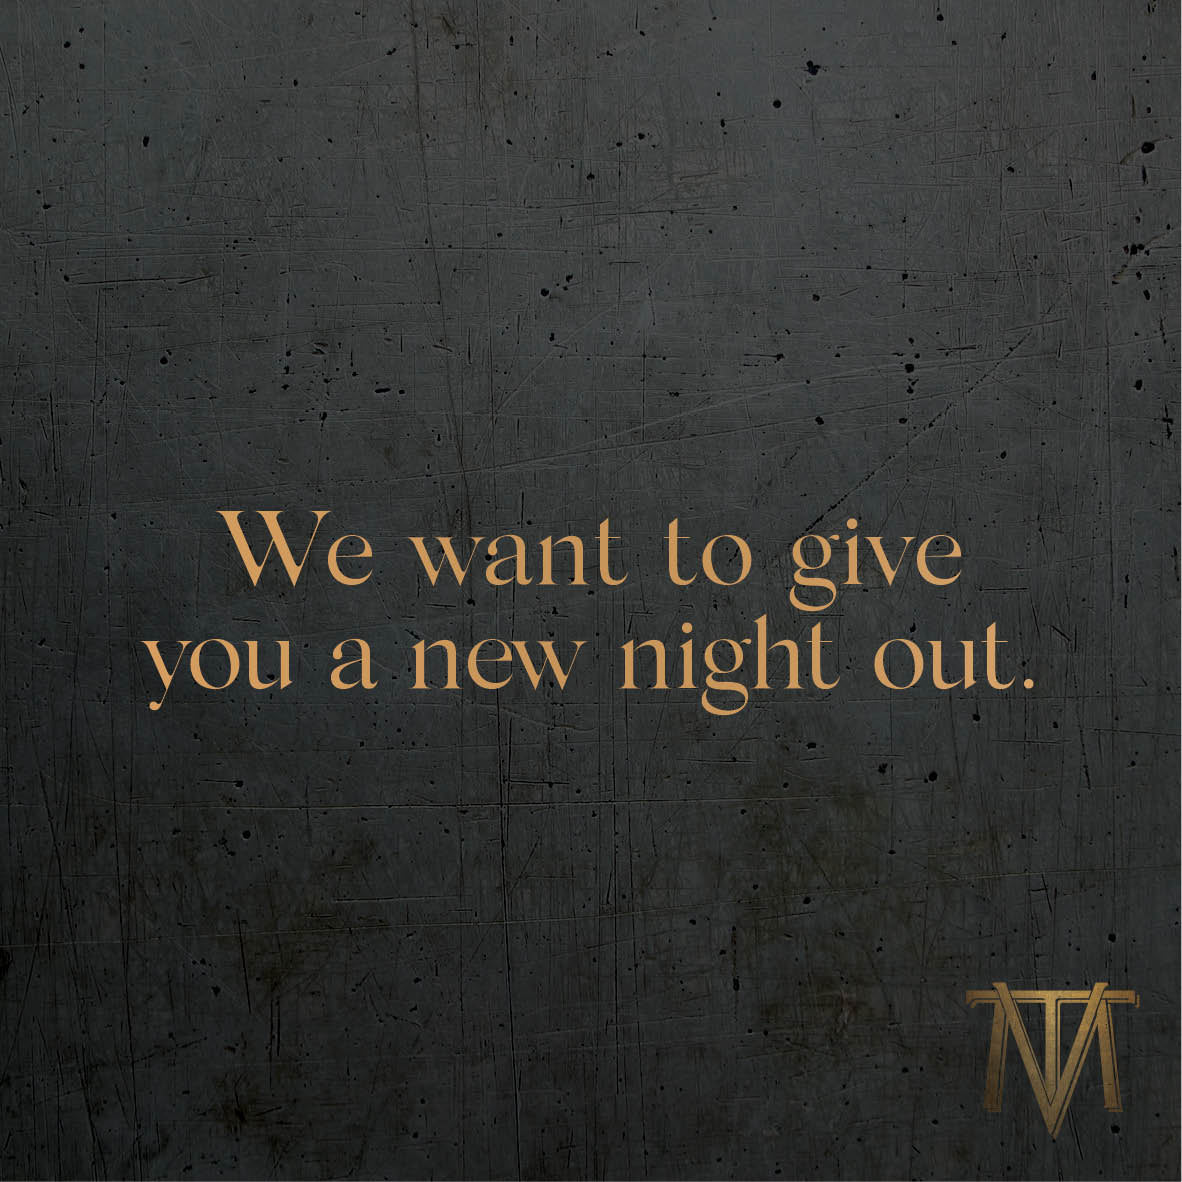 We want to give you a new night out.